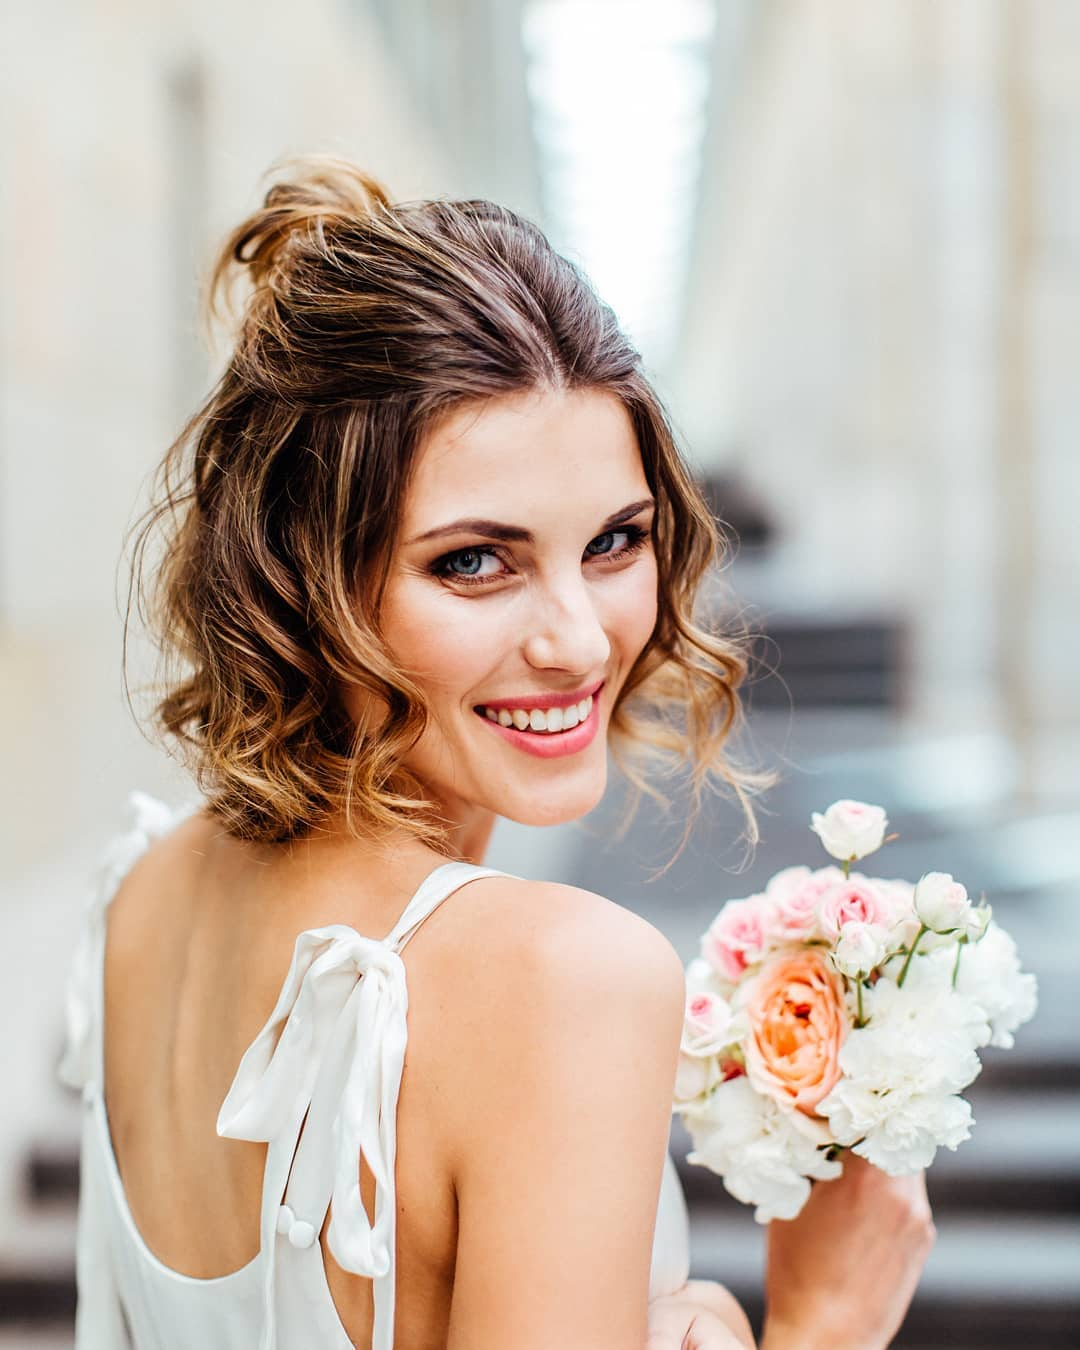 Wedding hairstyles: Woman with half-up, half-down short wavy hair, wearing a white dress and holding flowers